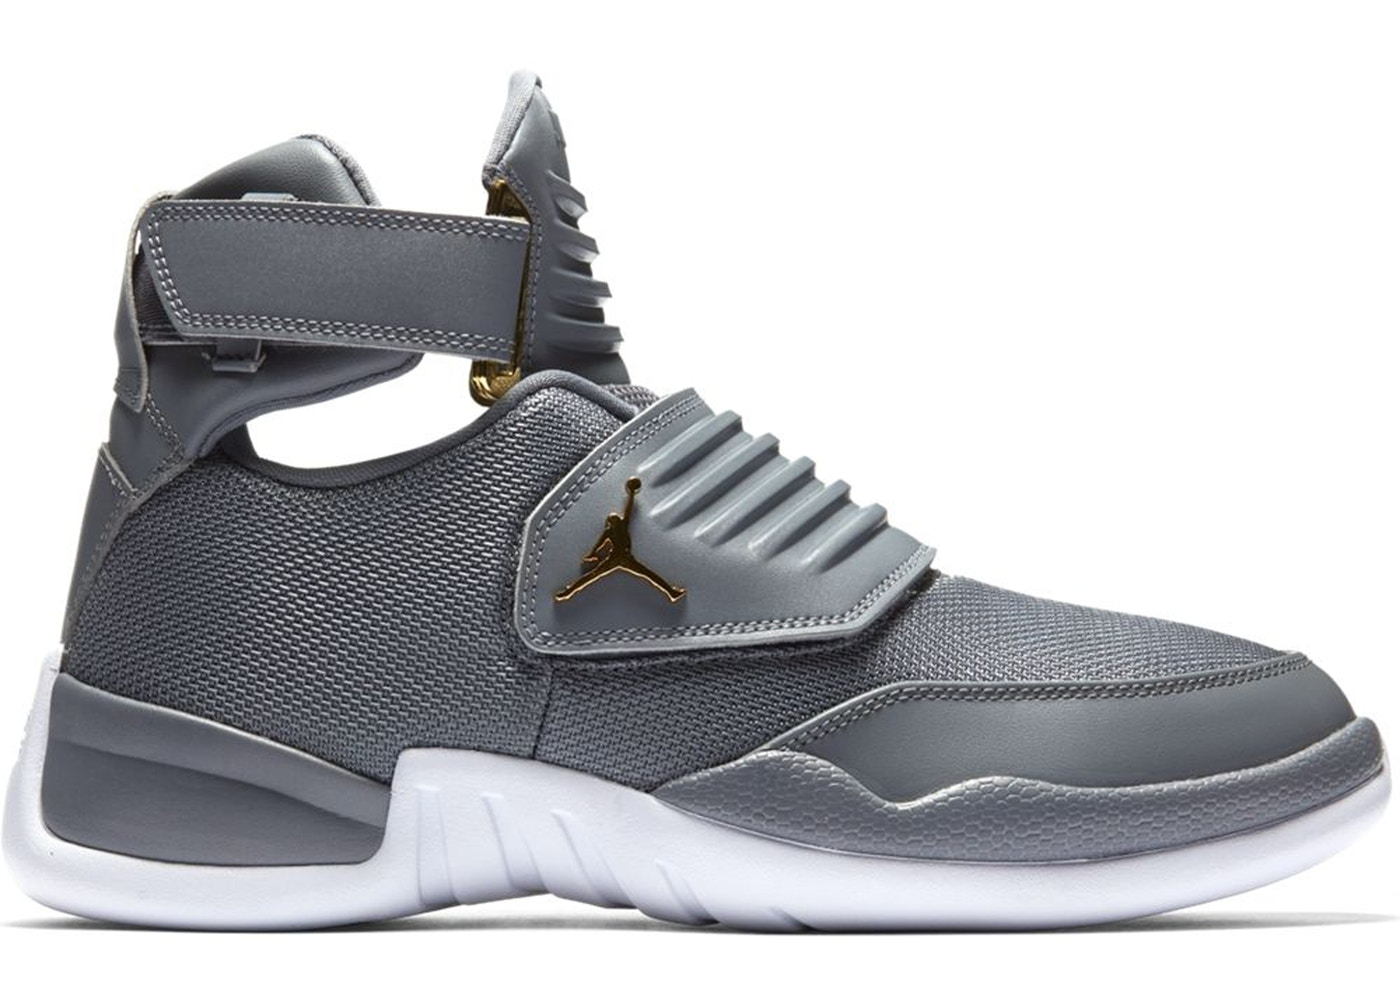 super popular 1f83c c7583 Jordan Generation 23 Cool Grey